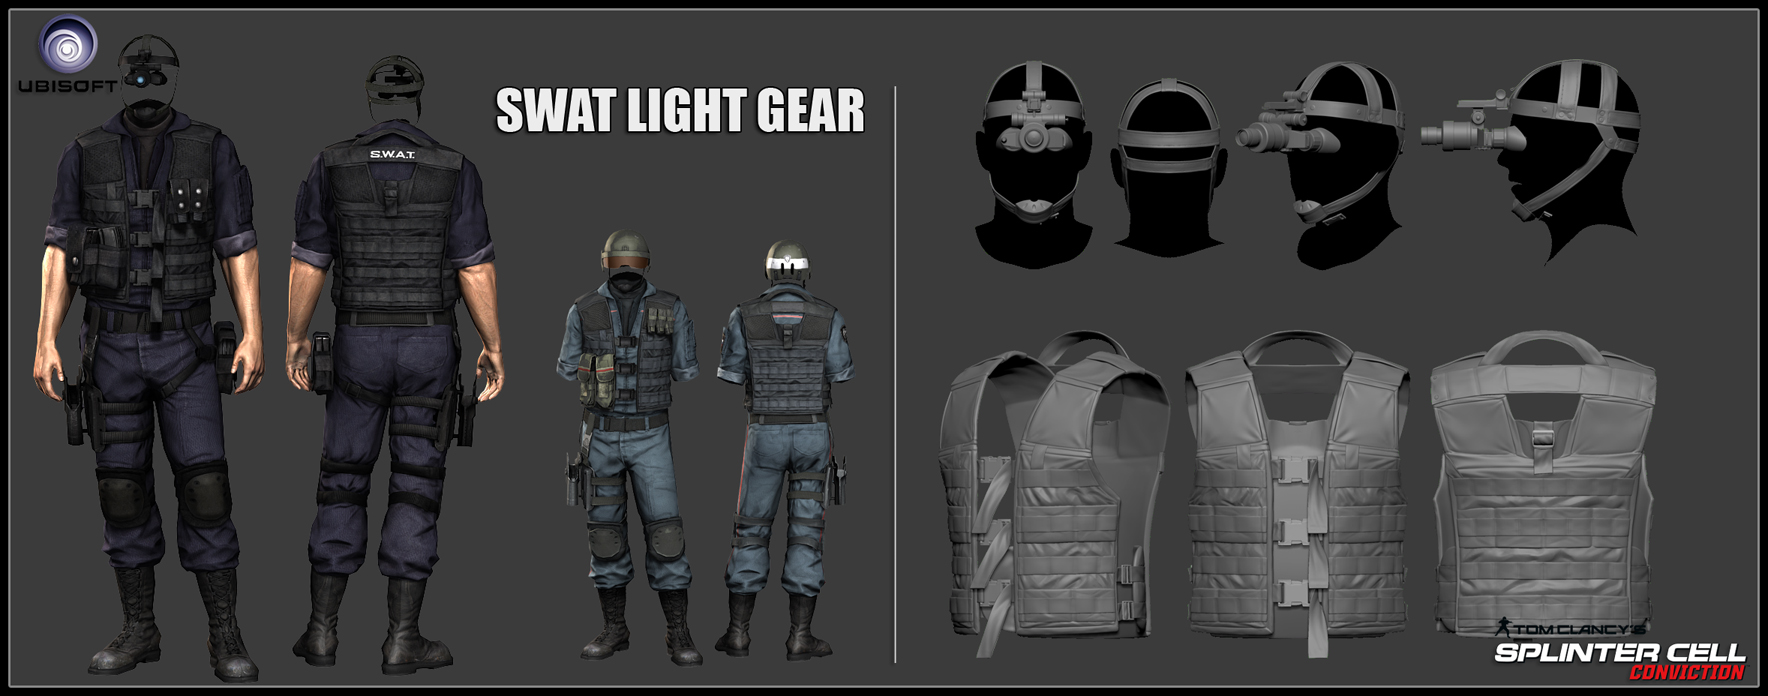 Pec System Swat Light Gear.jpg